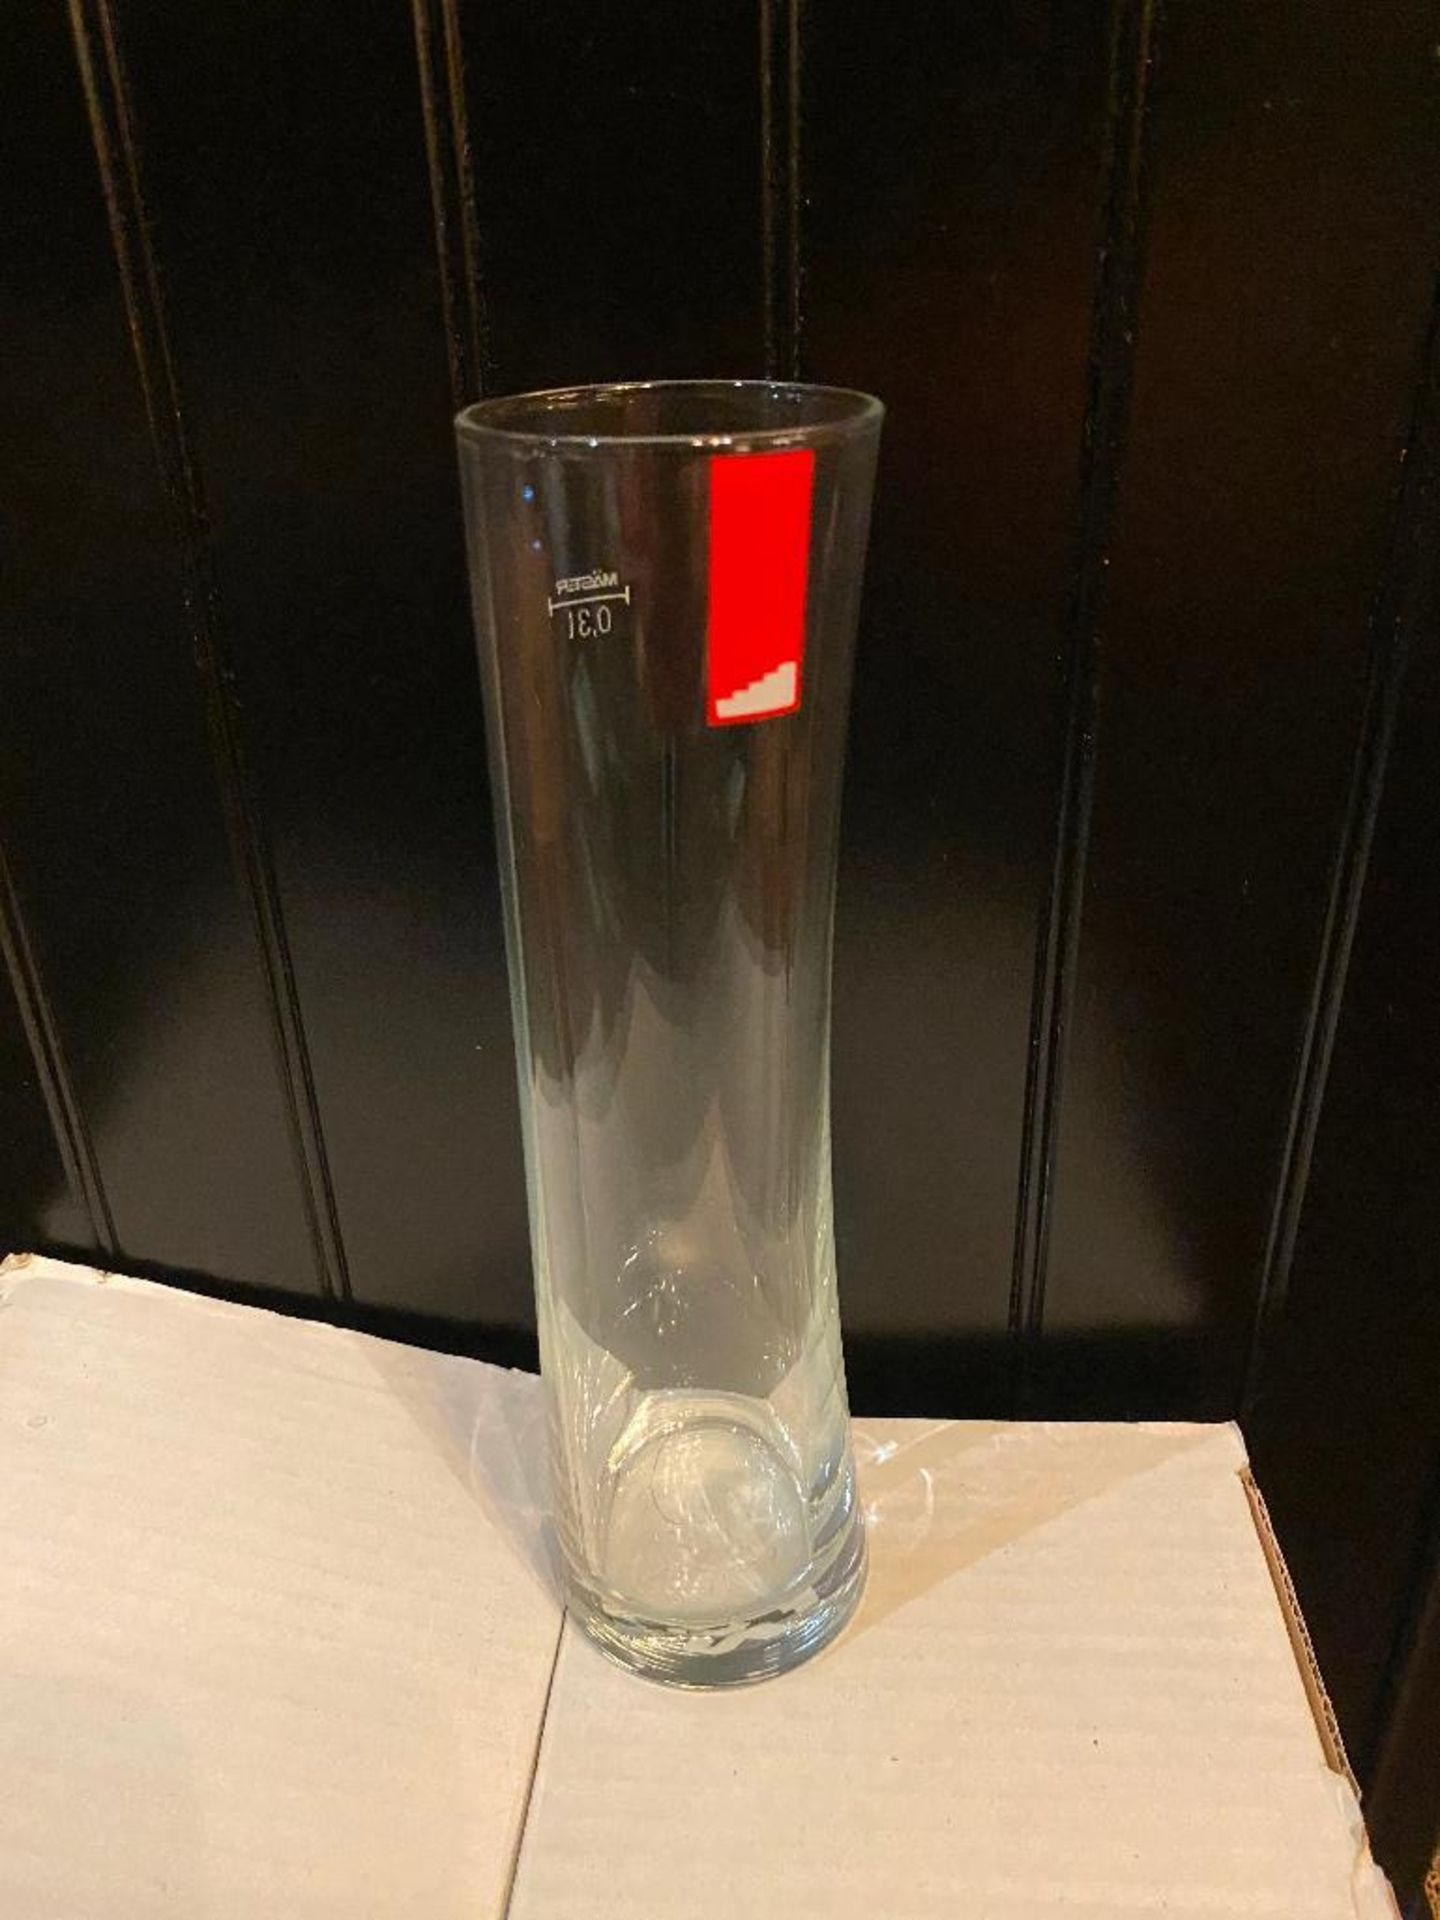 LOT OF (5) BOXES OF ASSORTED BRANDED GLASSES - Image 2 of 6